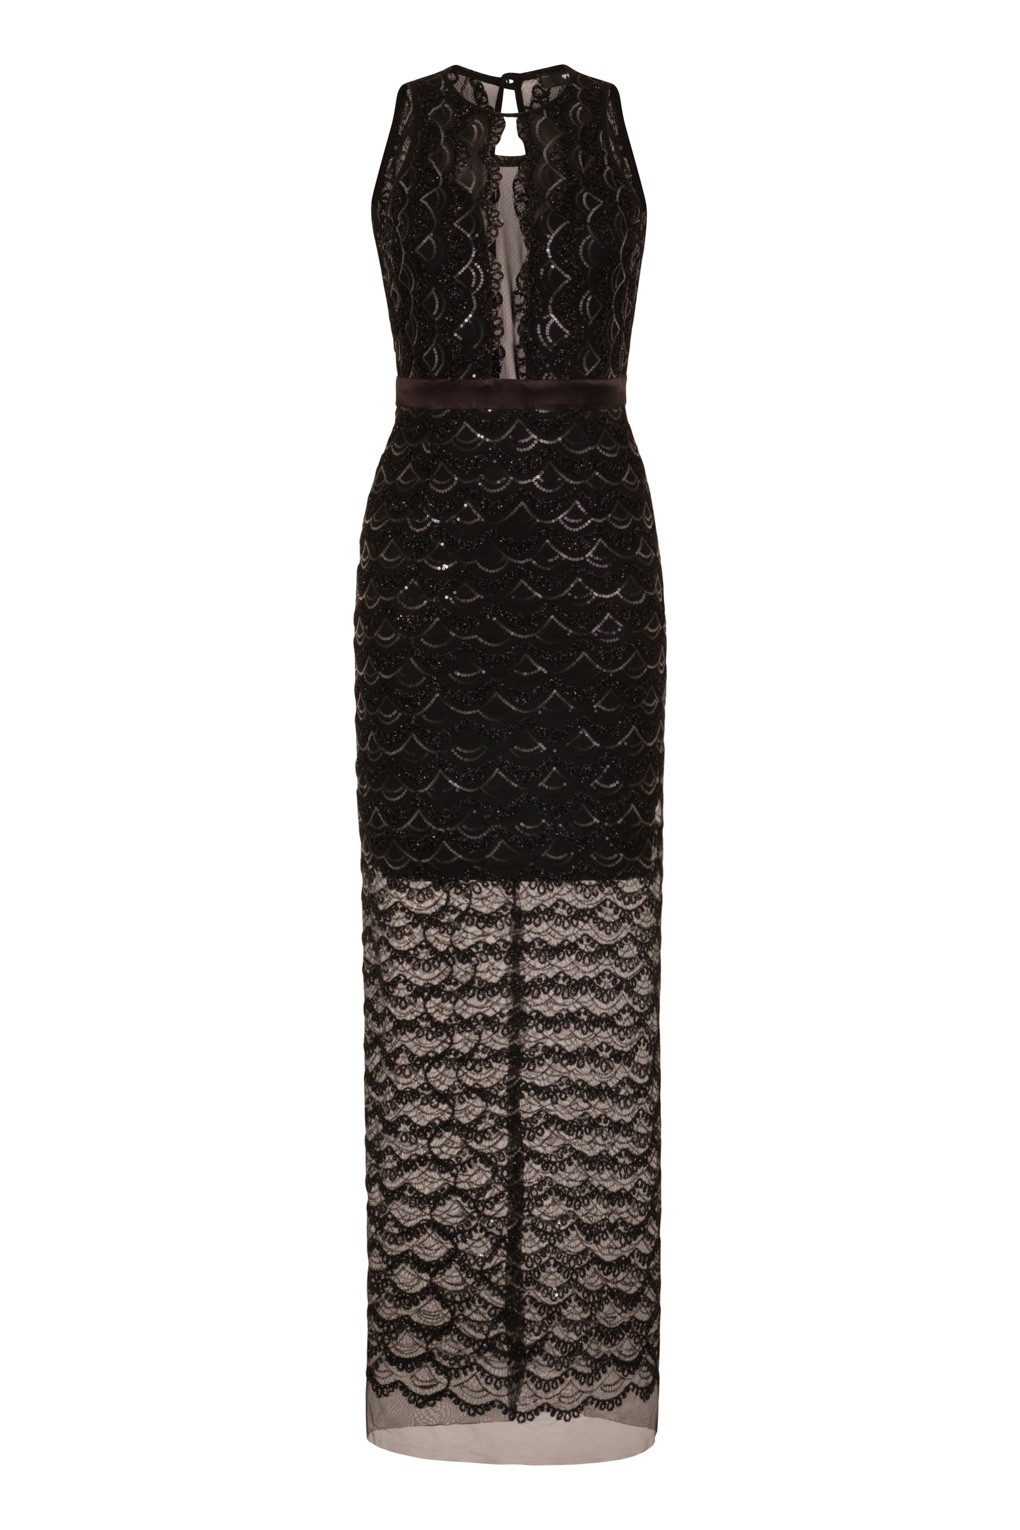 Tfnc maxi dress with fishtail and lace insert dress